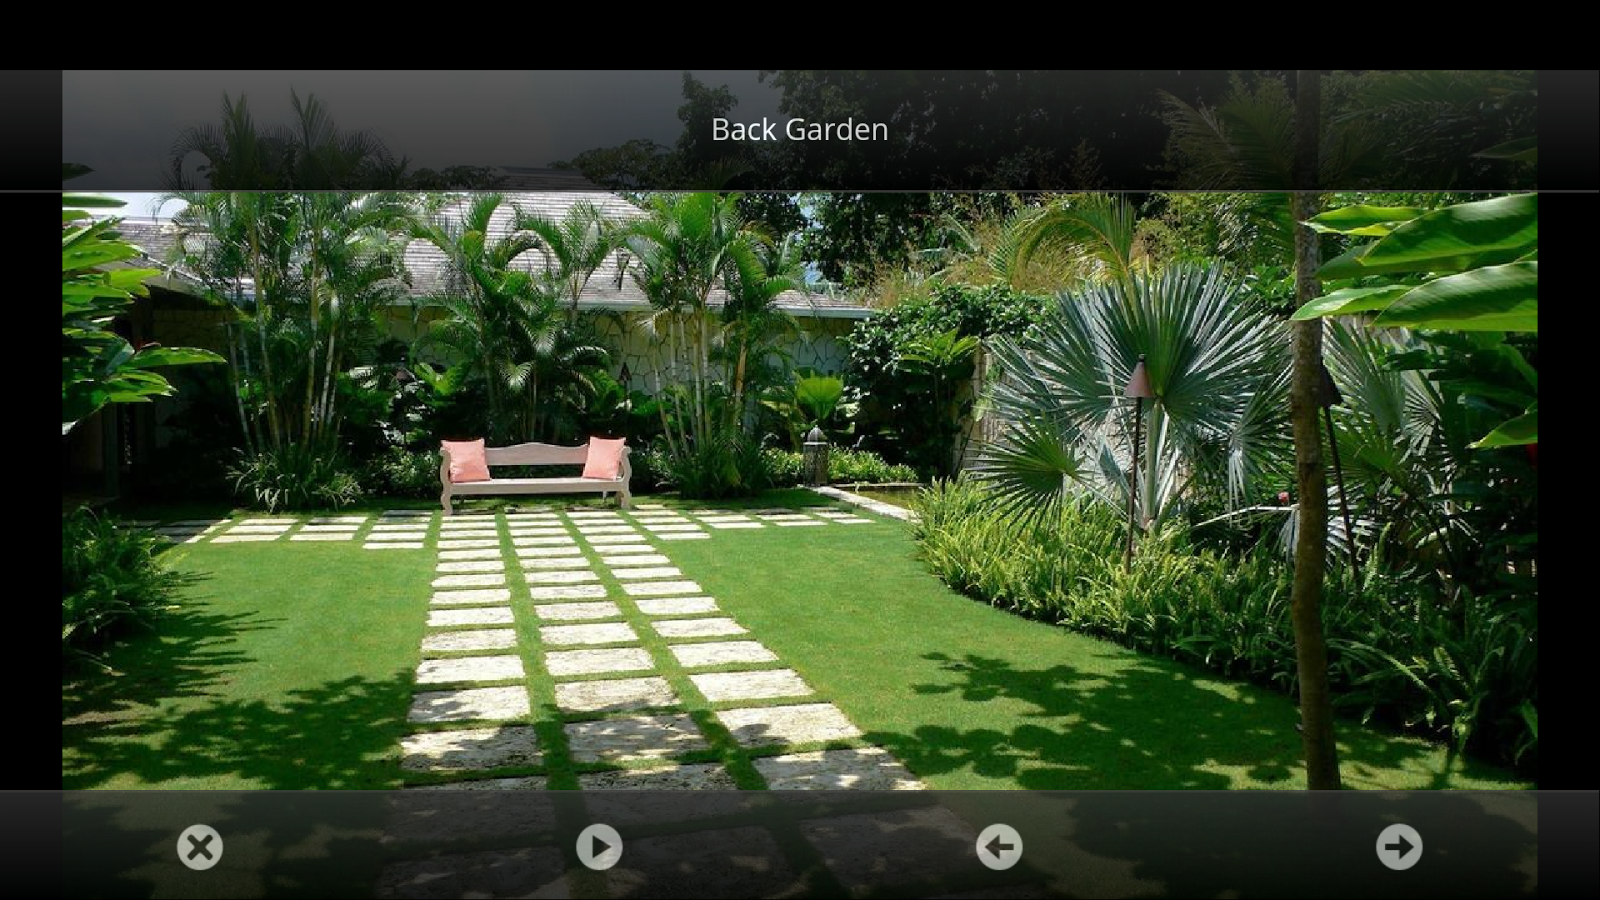 Landscape garden decor android apps on google play for Landscape your own garden